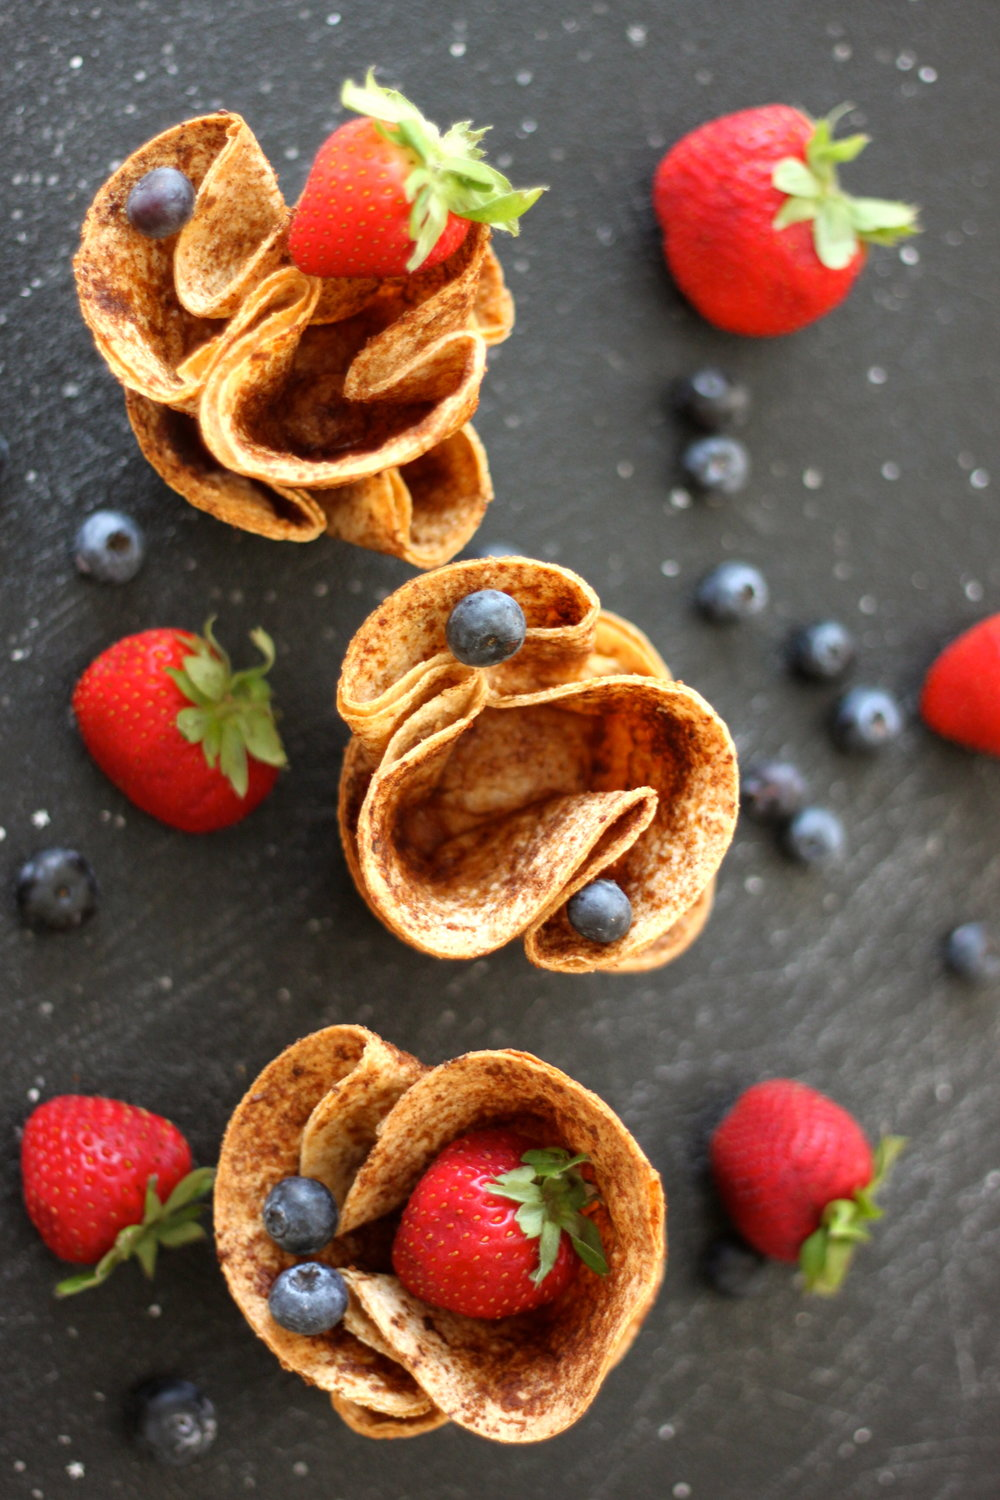 Cinnamon Sugar Cups-For Ice Cream, Fruit, Etc! From The Diva Dish